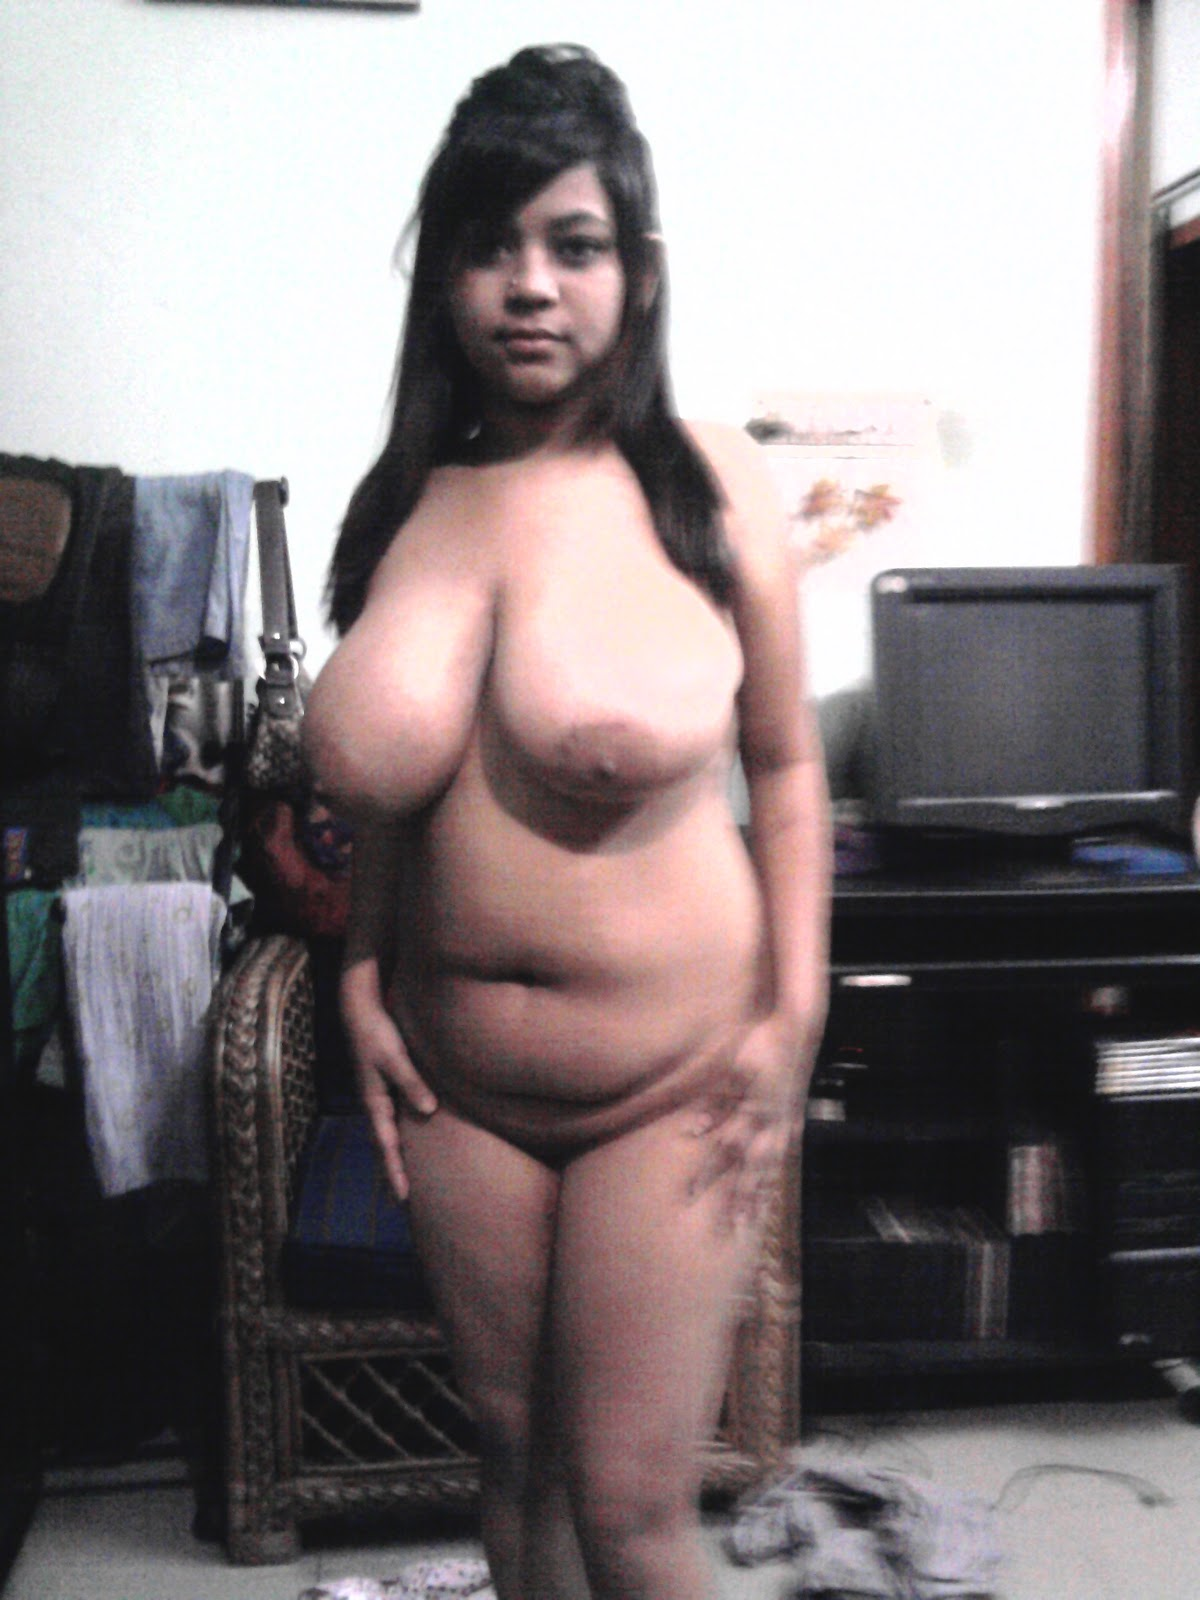 Opinion nud girl of bangladesh think, that